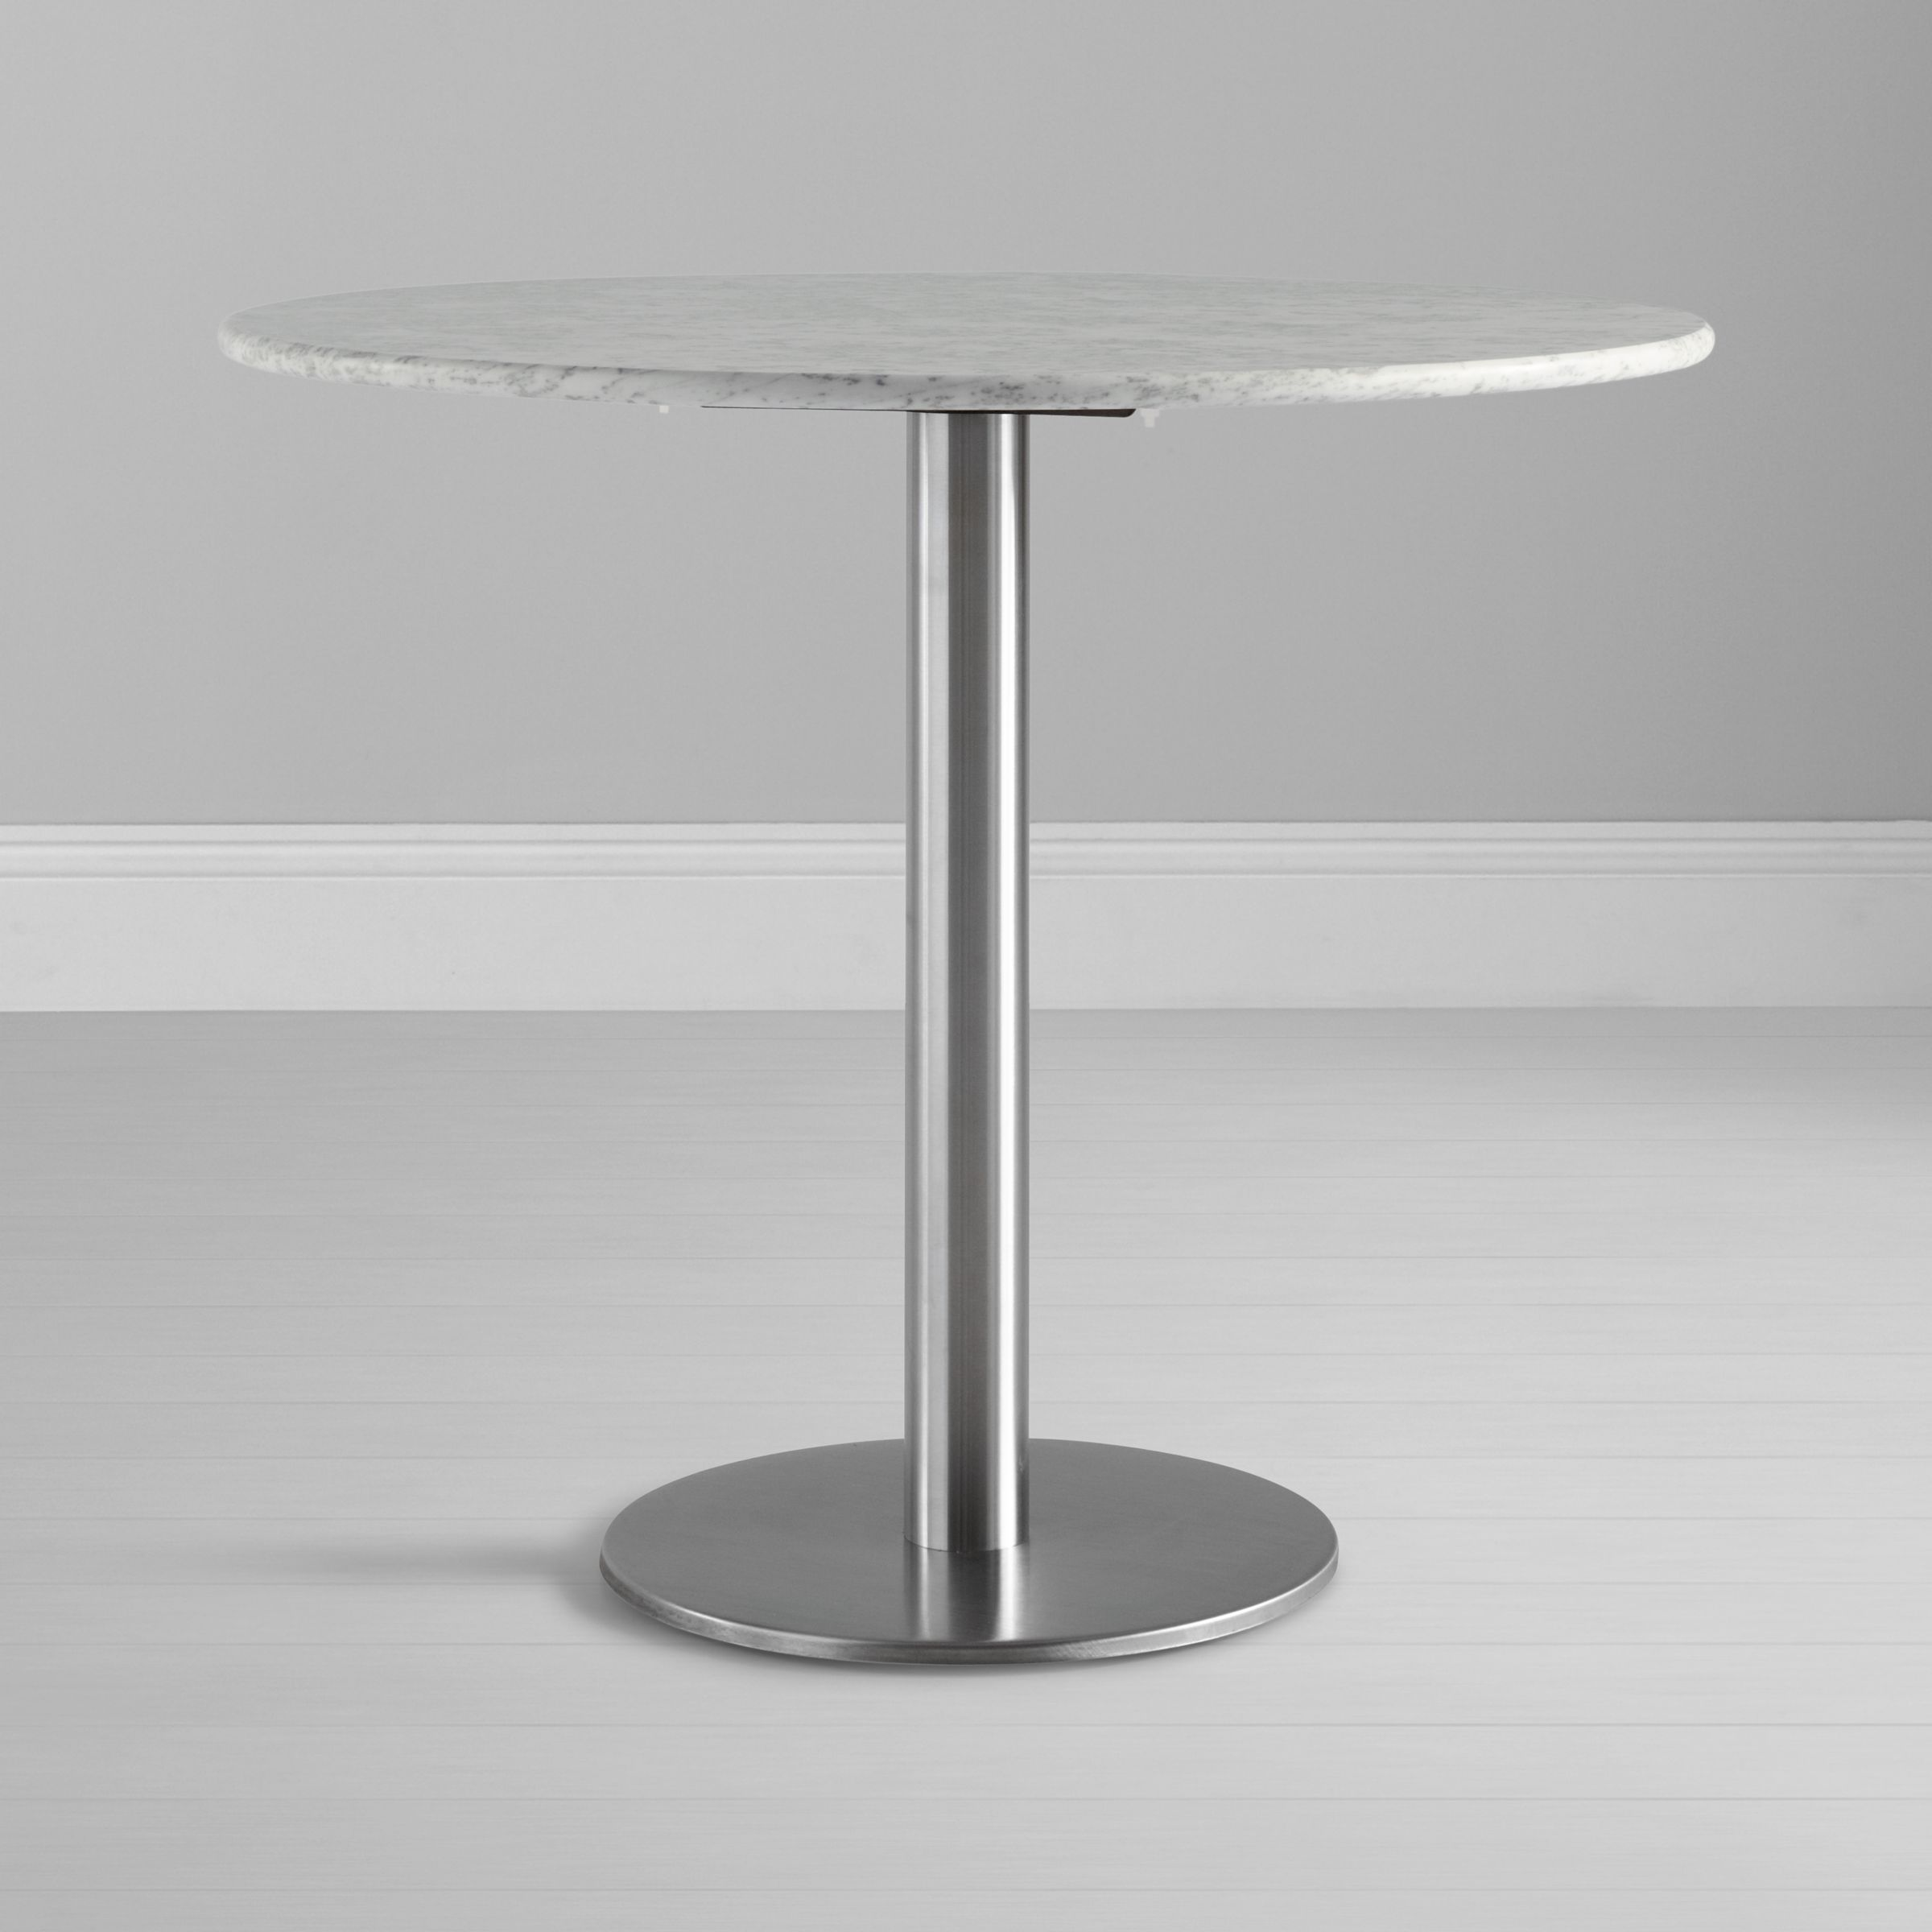 Top 10 cheapest Marble dining table prices best UK deals  : 231328576zoom from top.priceinspector.co.uk size 2400 x 2400 jpeg 188kB